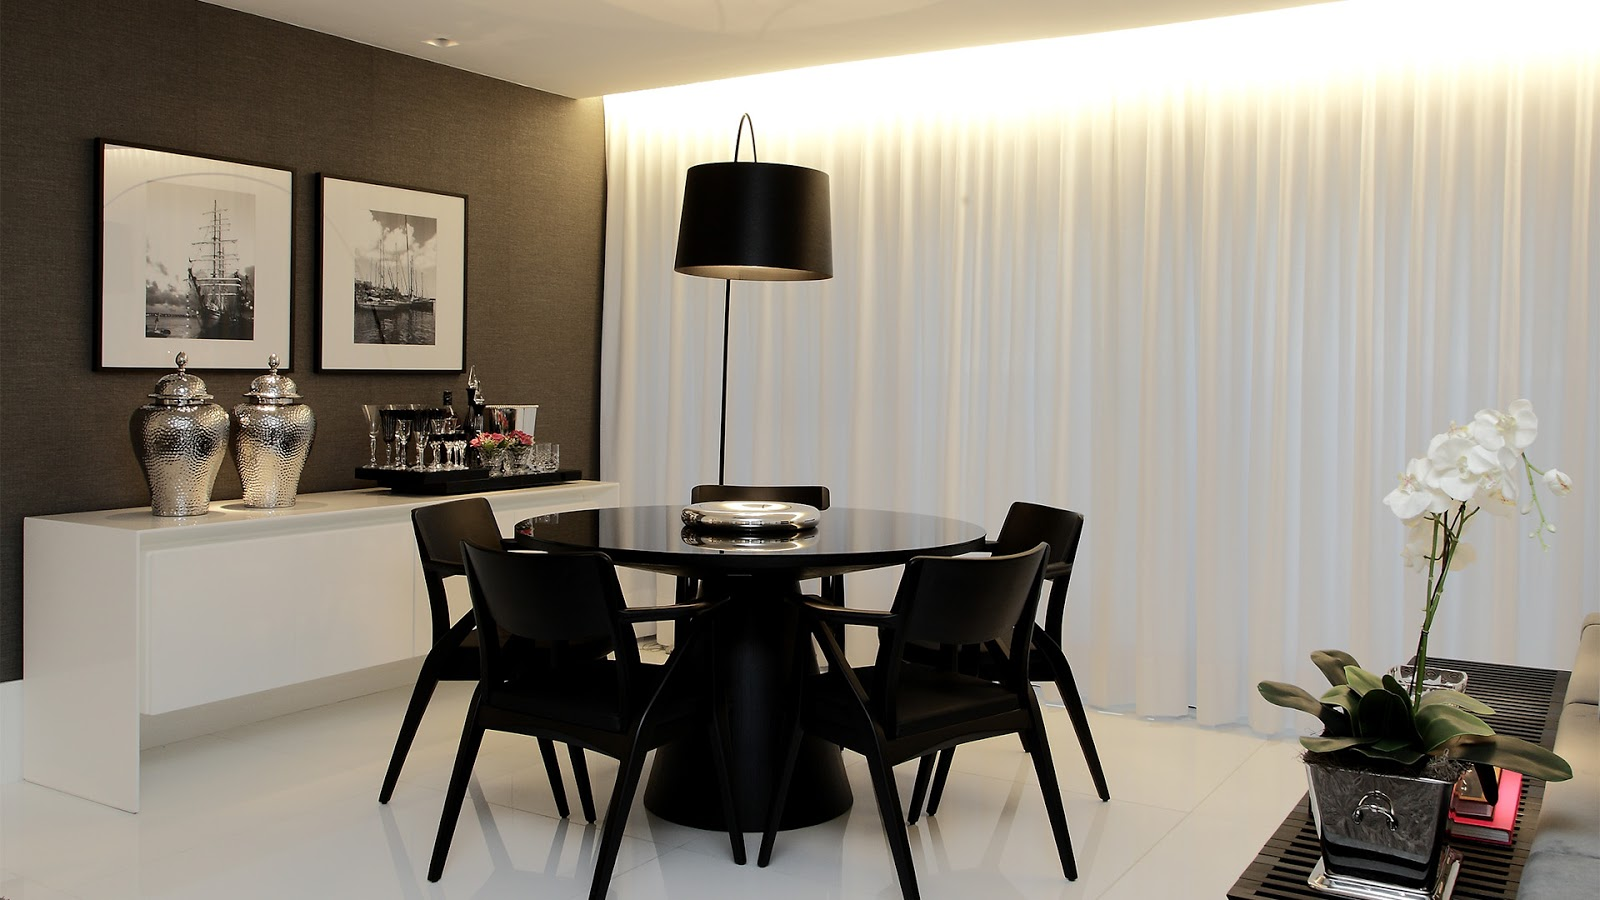 Sala De Tv Cor Cinza ~ Salas de estar, jantar e tv integradas e decoradas de preto, branco e